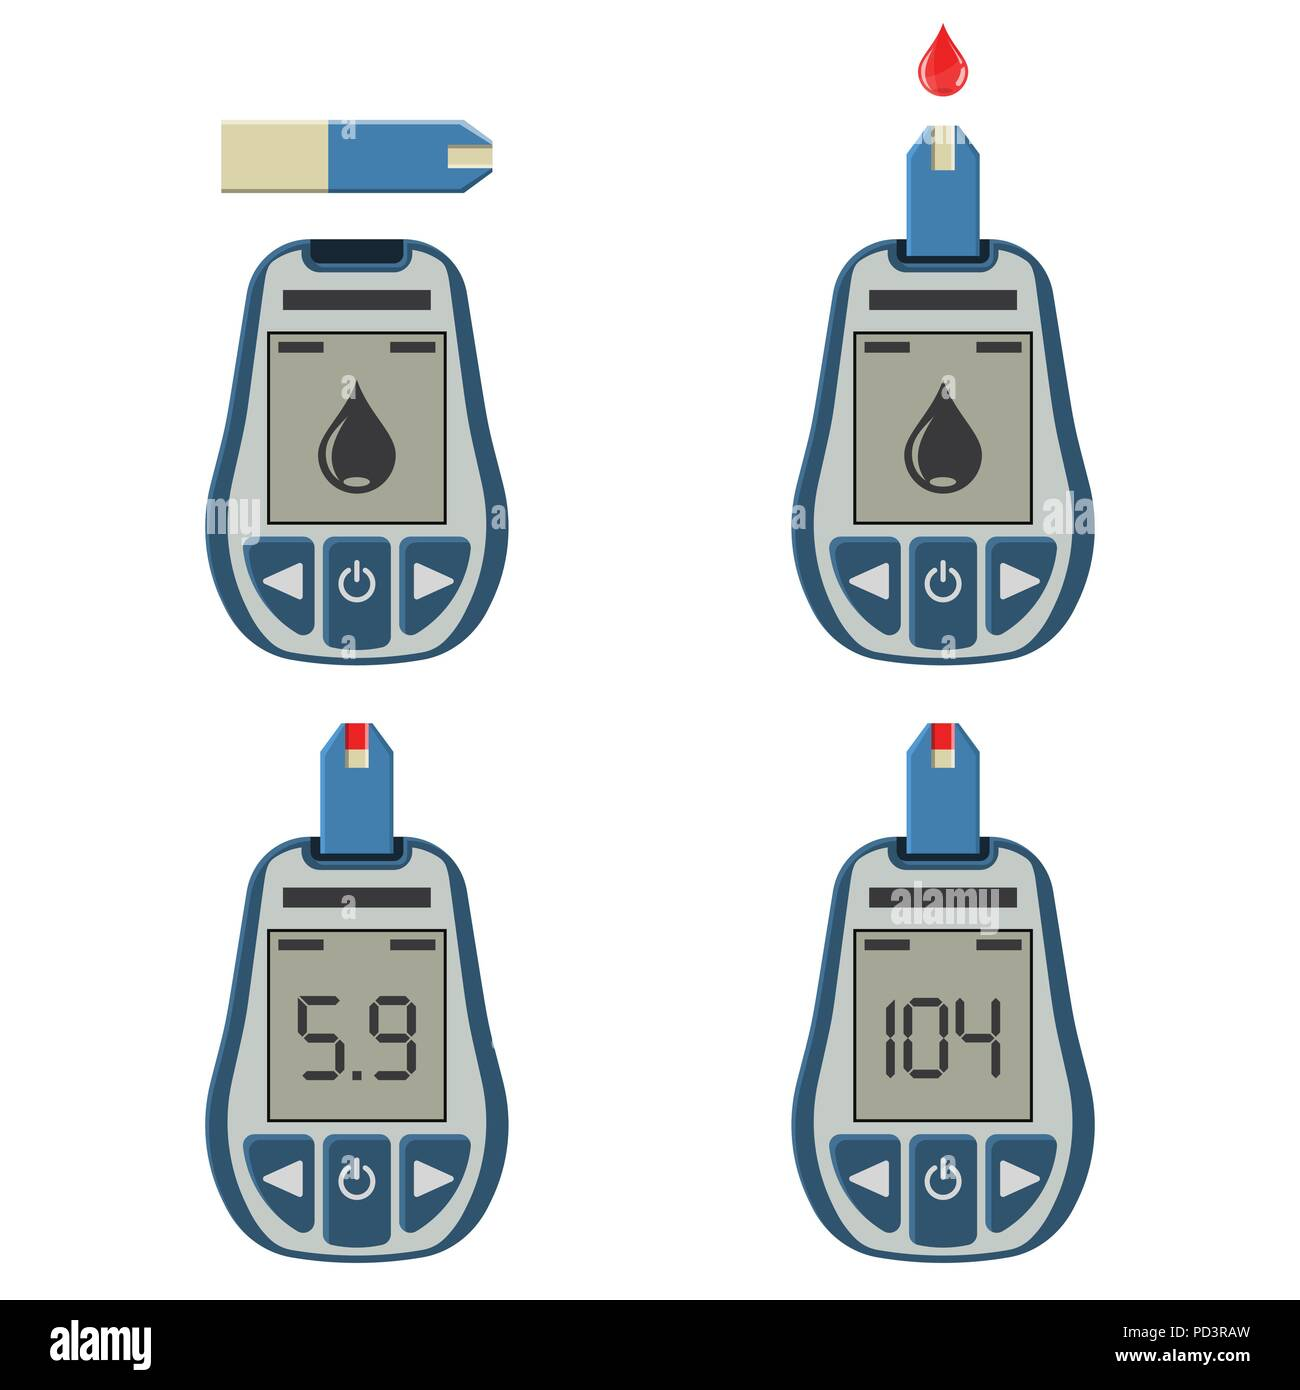 Blood Glucose Meter - Stock Image